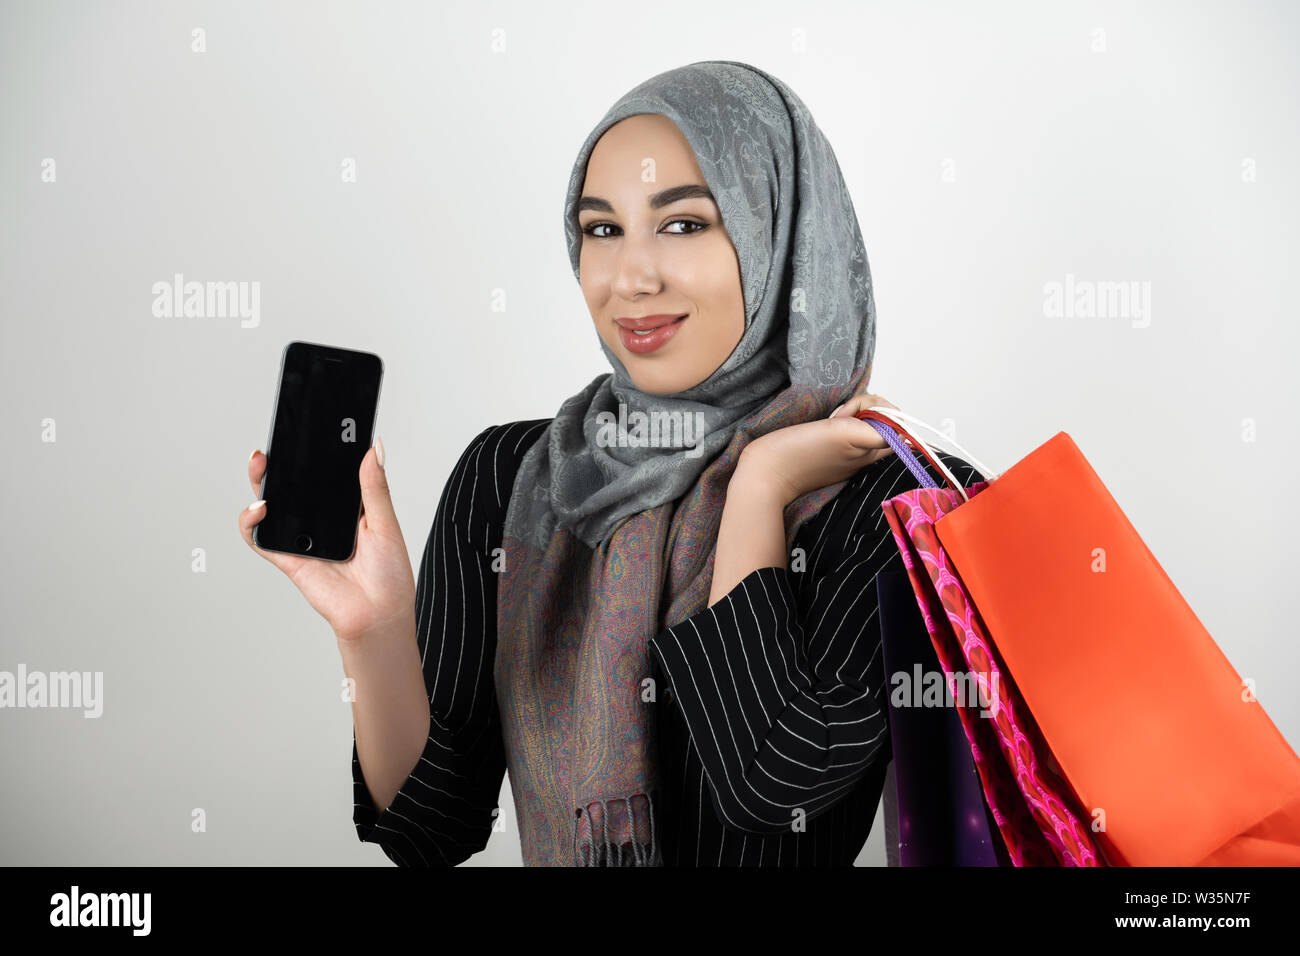 Muslim business woman wearing turban hijab headscarf showing smartphone with one hand and carrying shopping bags in another hand isolated white - Stock Image